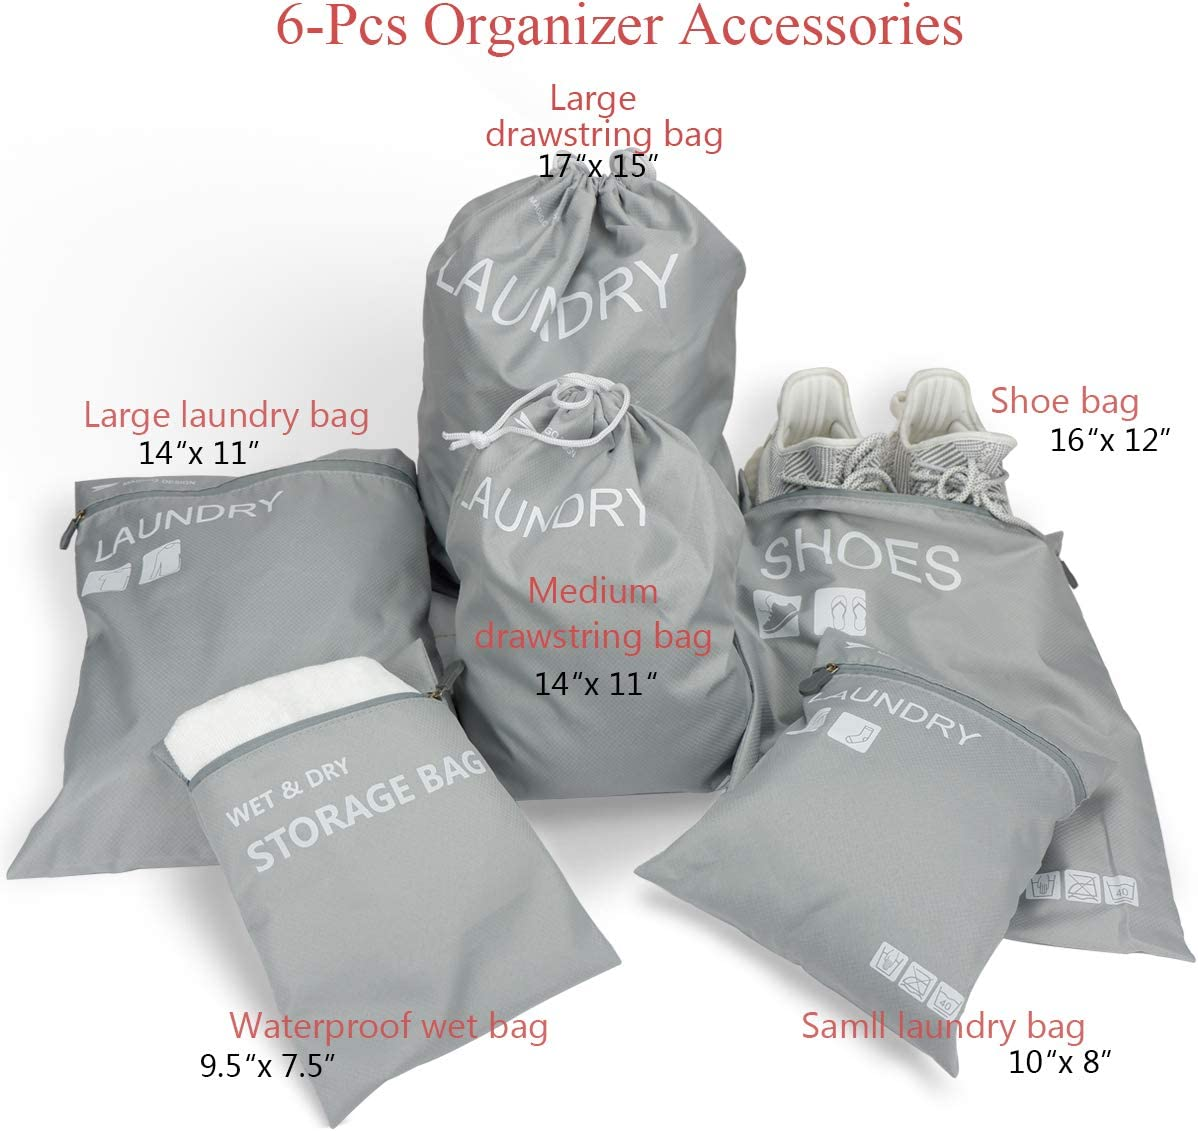 Dirty Laundry Bags MAGIGO 10 Set Luggage Organizers for Travel with Packing Cubes Shoes Bag and Wet//Dry Storage Bag